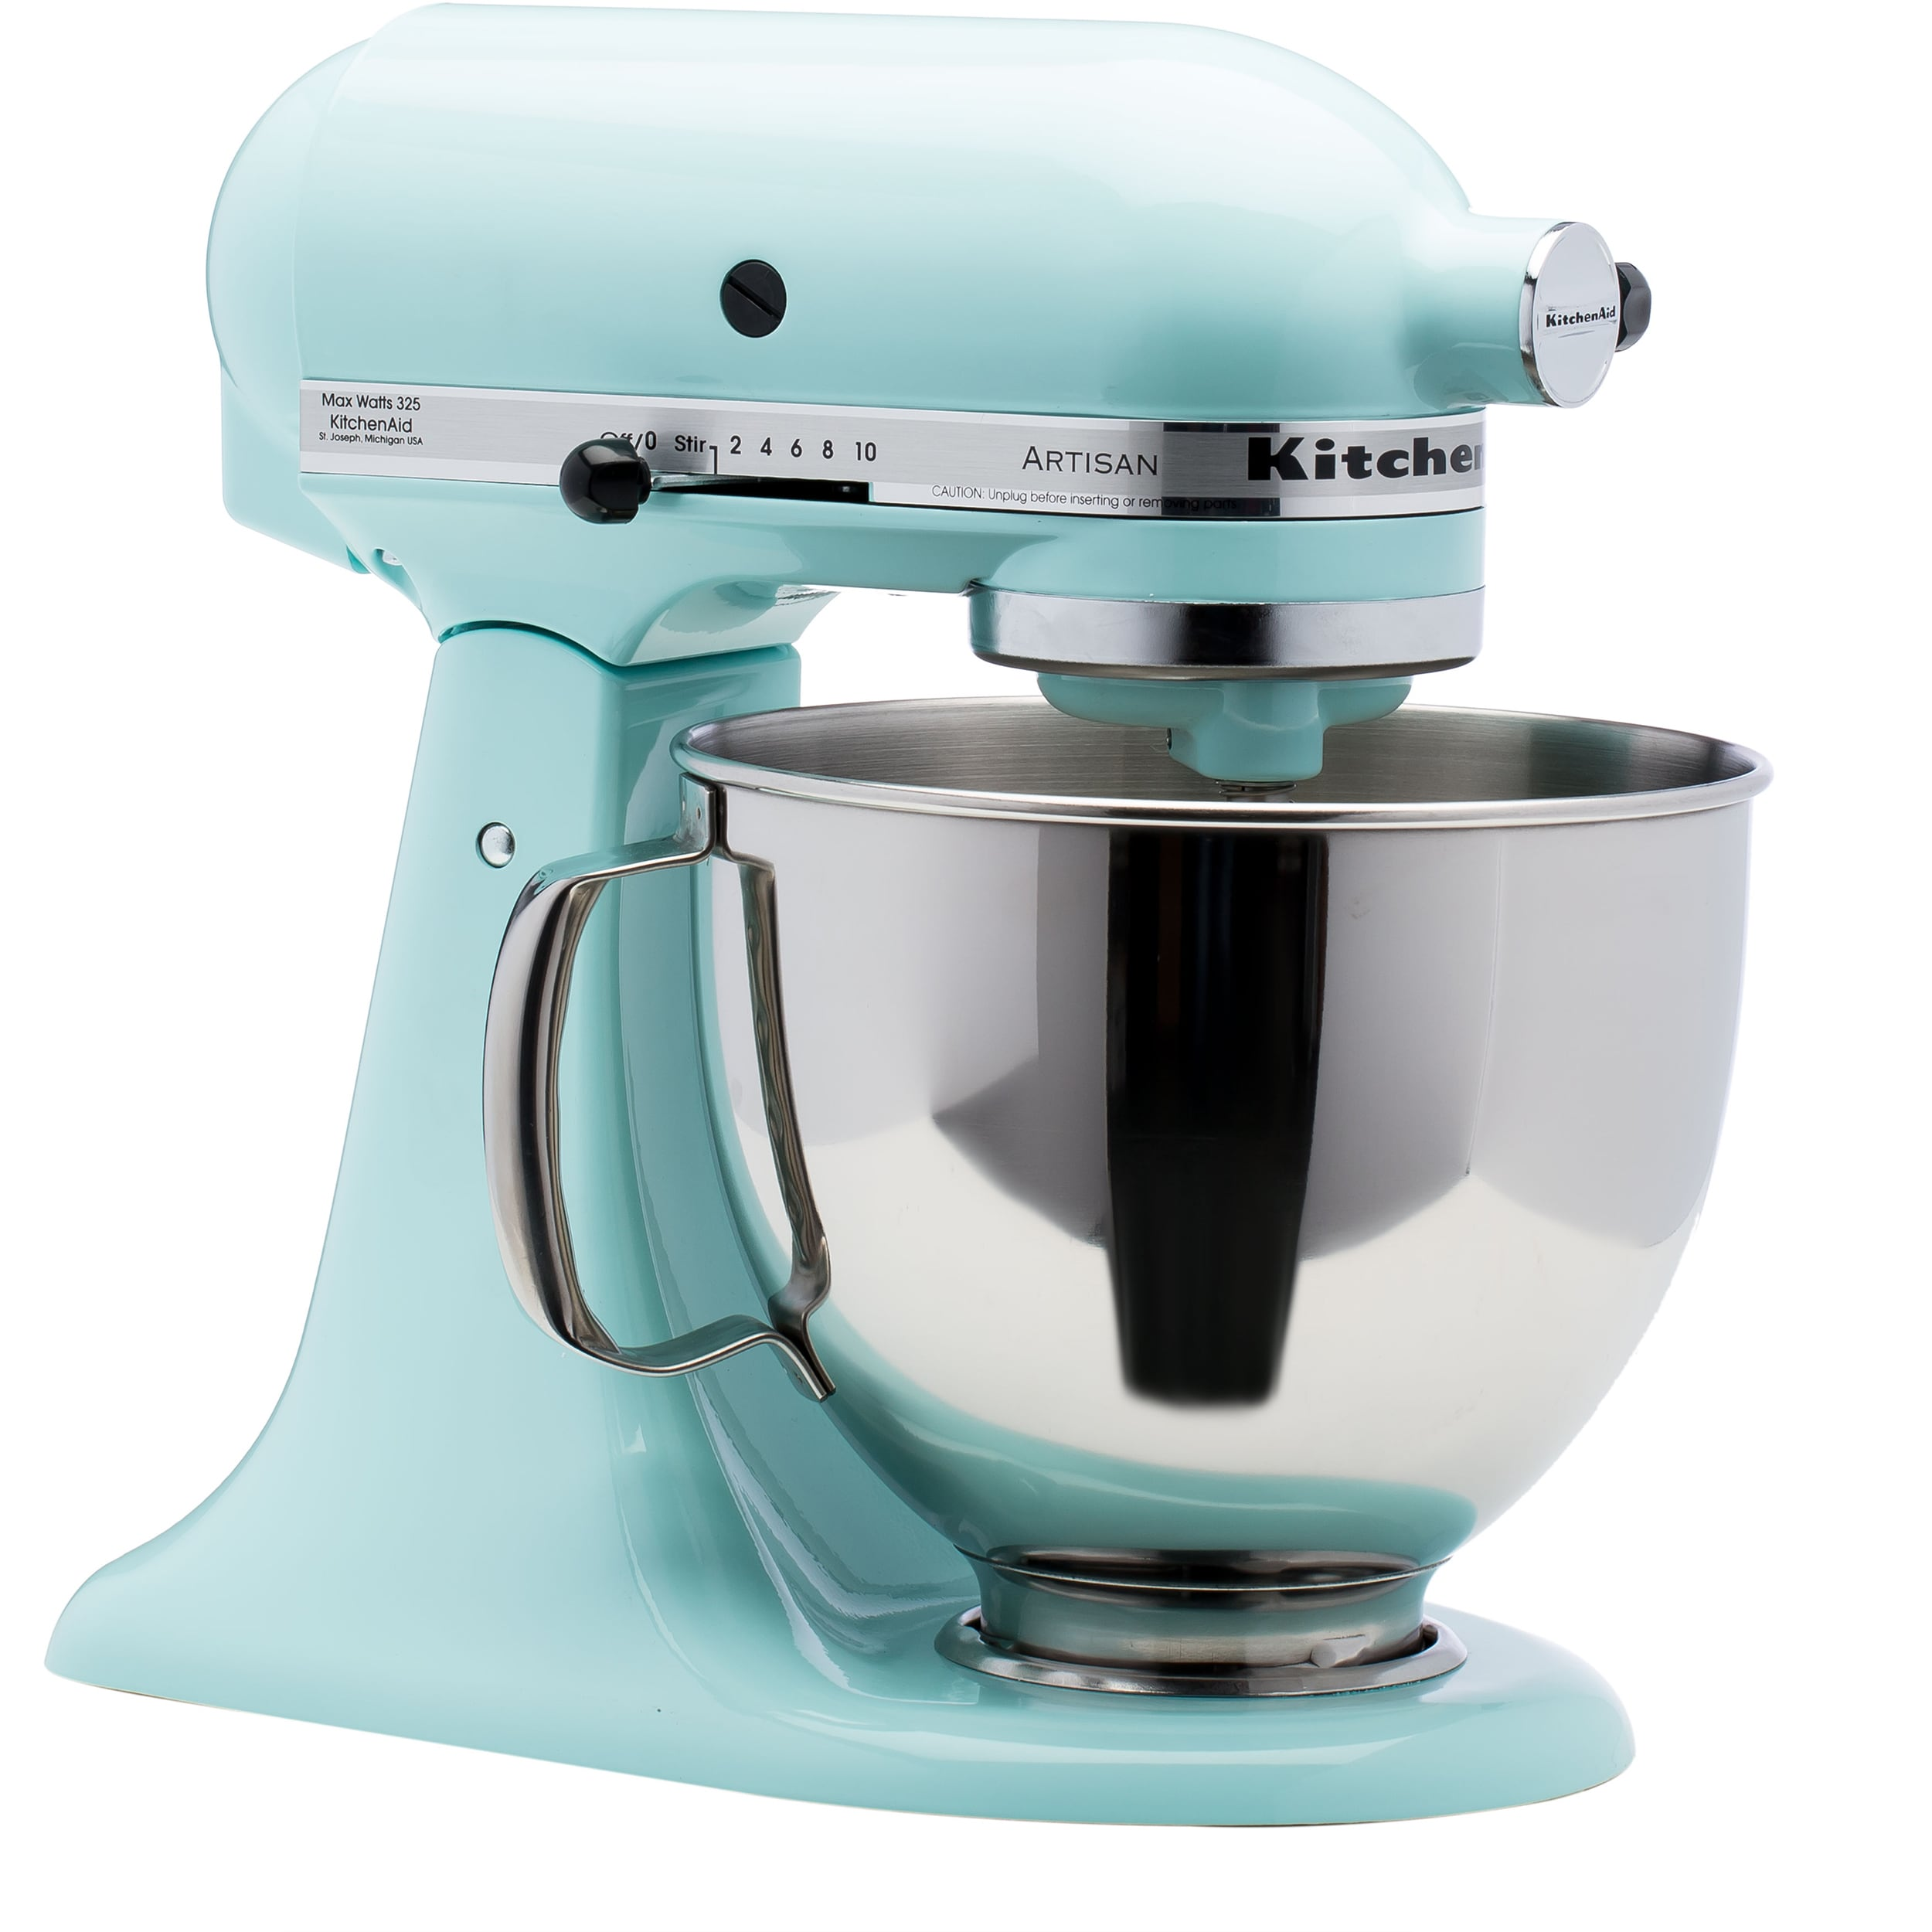 Shop KitchenAid RRK150IC Ice 5-quart Artisan Tilt-Head Stand Mixer on rachael ray products, ge products, toastmaster products, general electric products, corian products, wolf products, whirlpool products, braun products, global products, imperial products, marvel products, sears products, norpro products, kirkland products, lynx products, creative bath products, subzero products, tassimo products, hitachi products, jcpenney products,